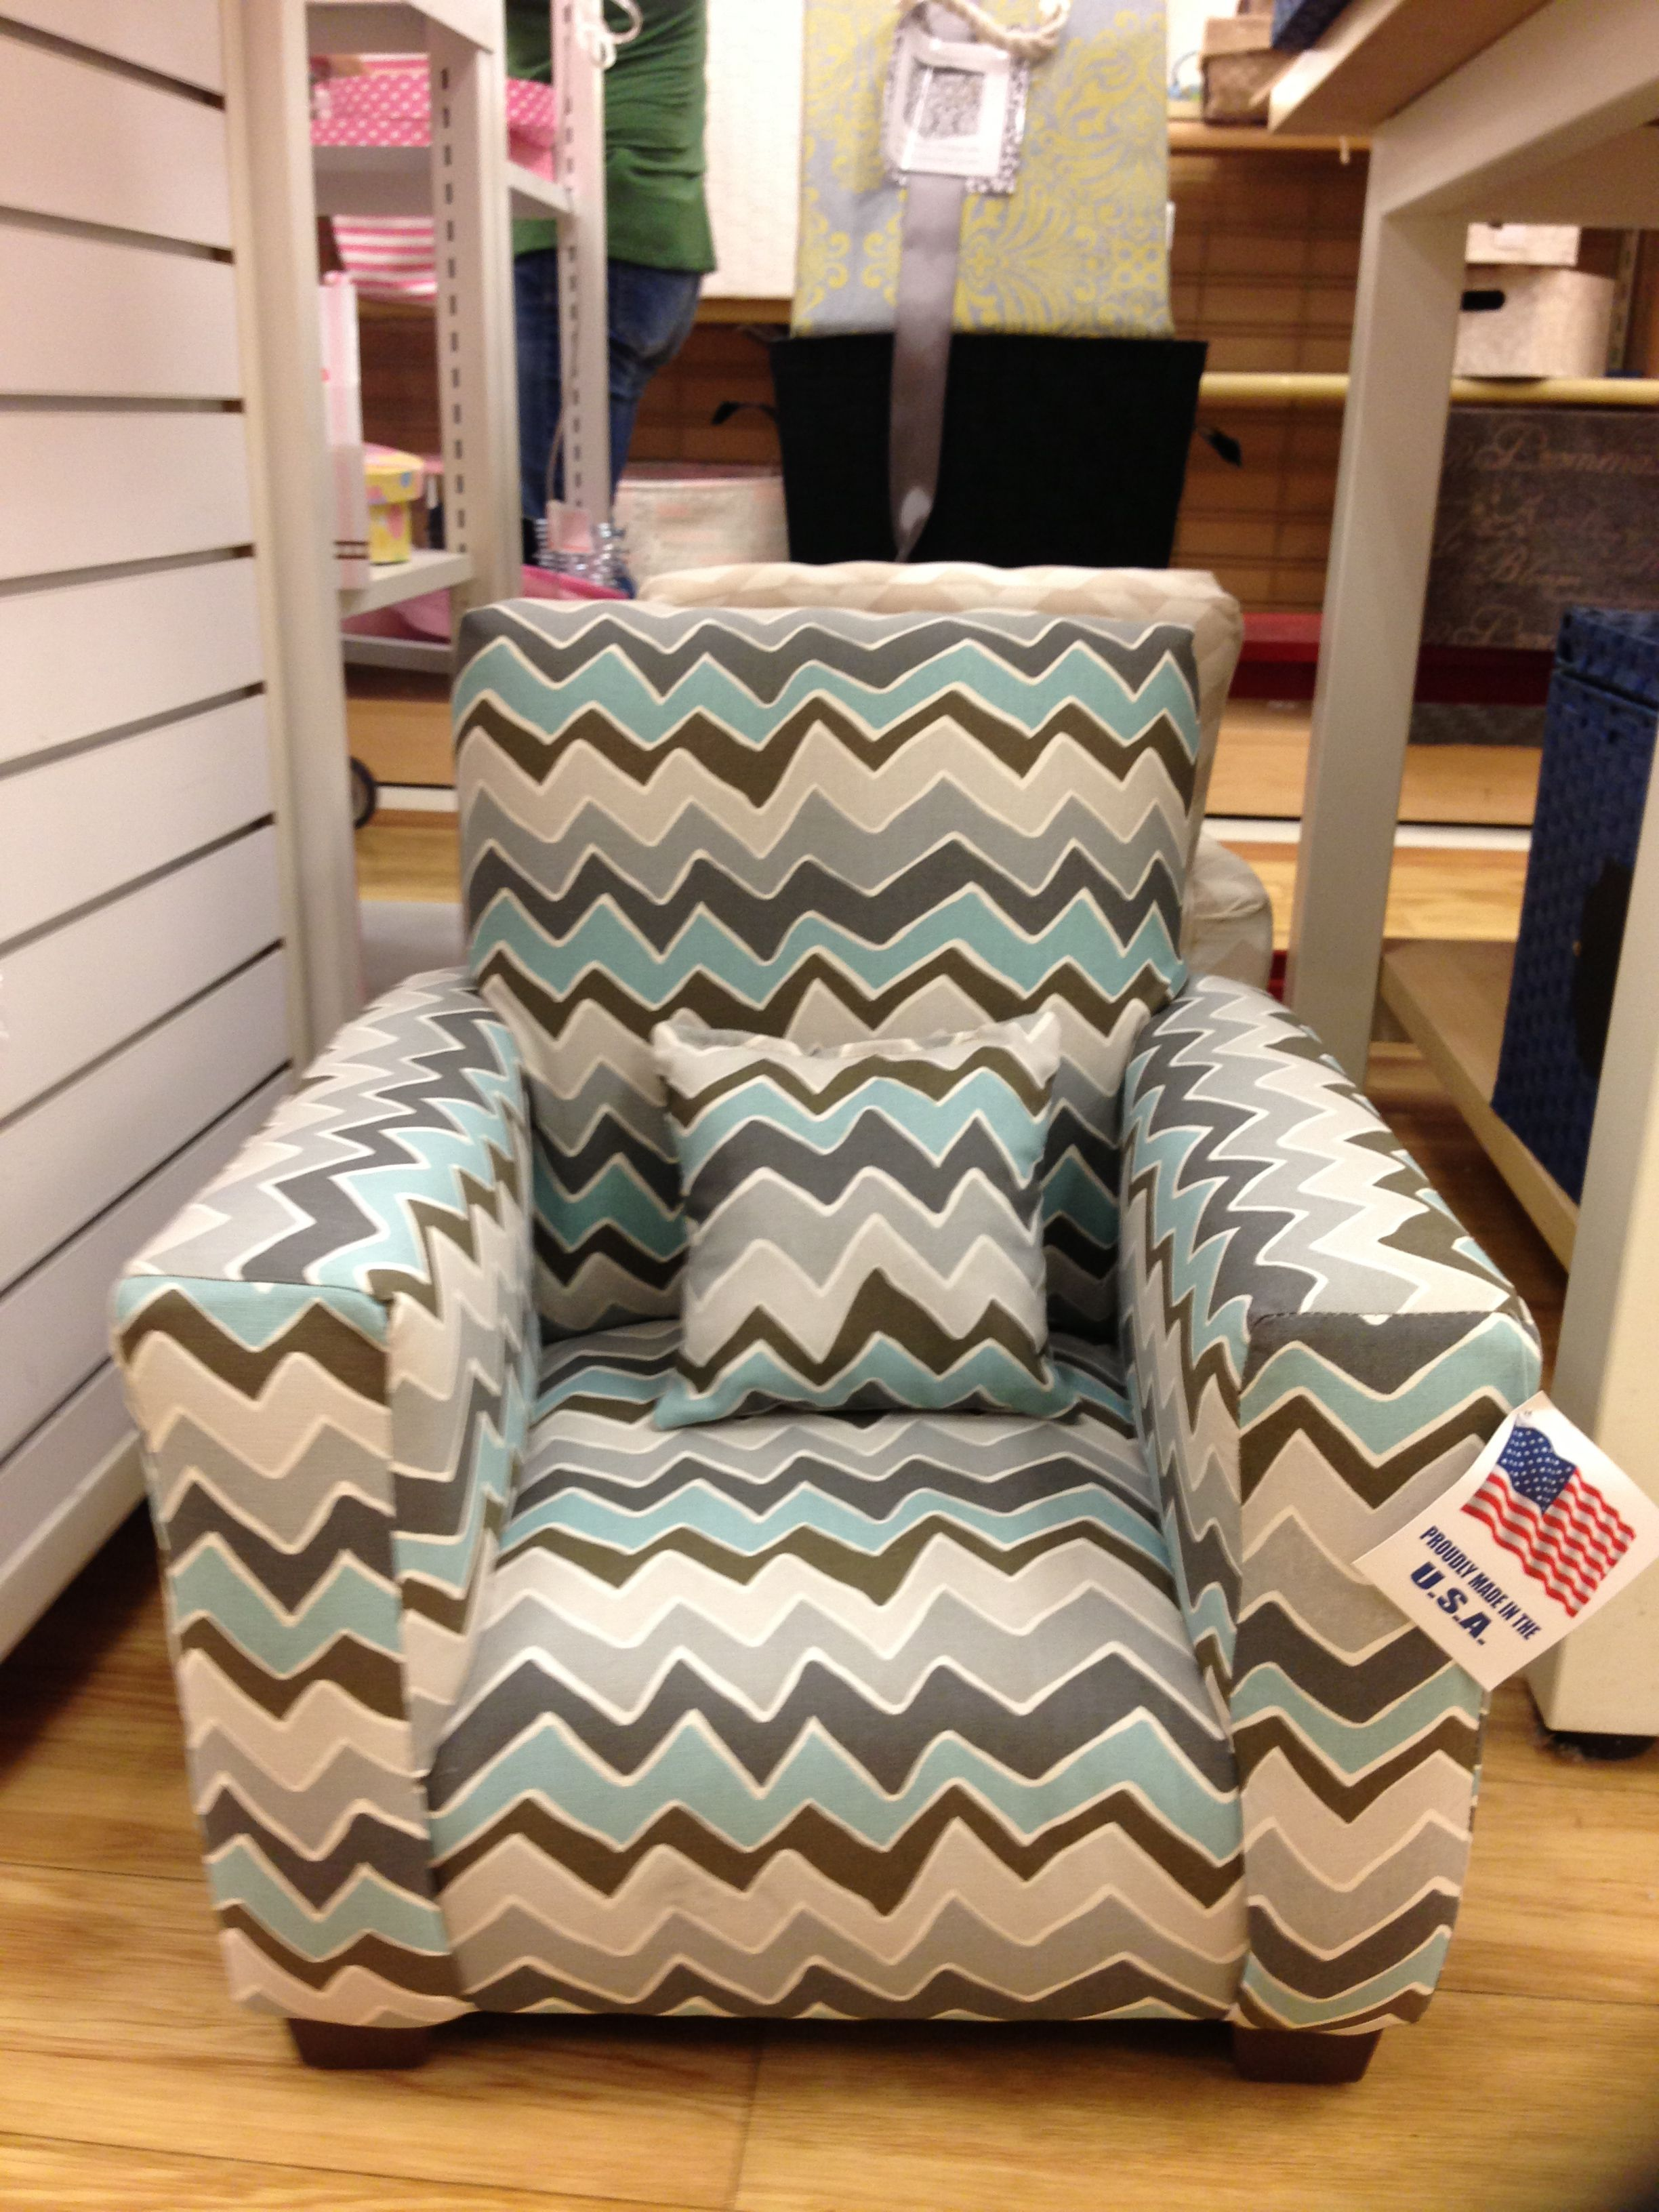 Kids chair at Marshall s home goods Home Goods